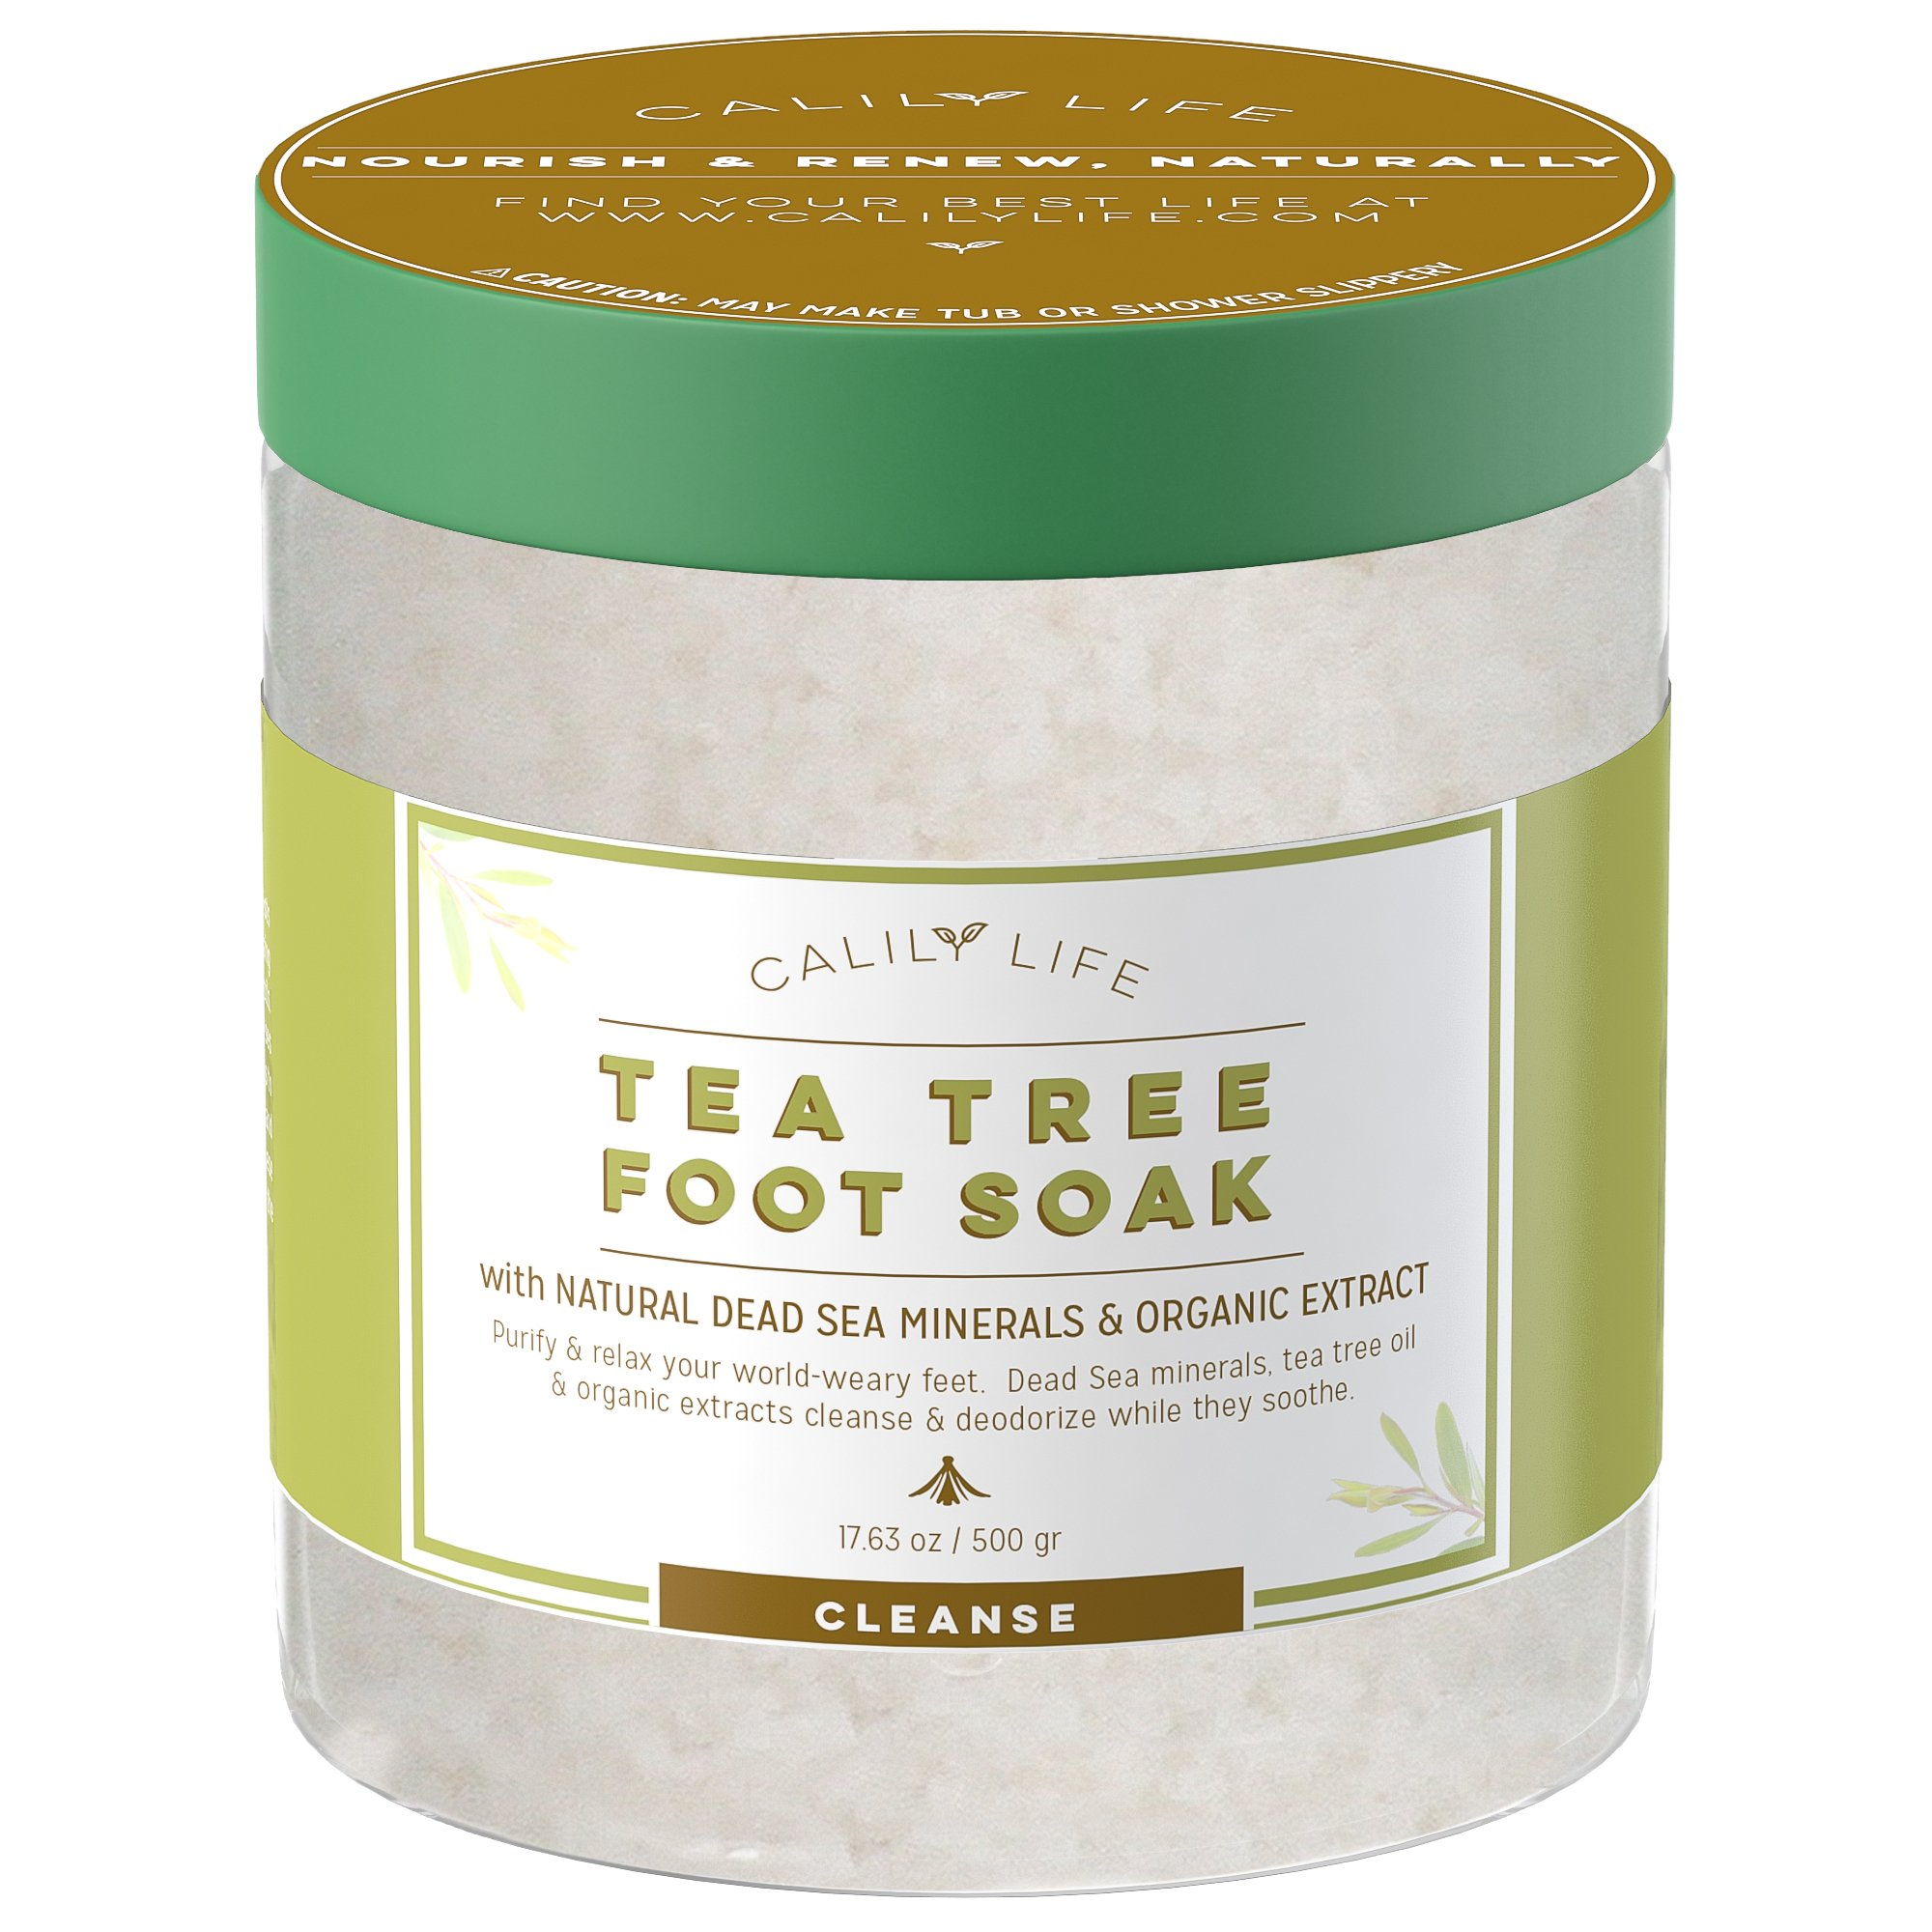 Calily Life Organic Tea Tree Oil Foot Soak with Natural Dead Sea Minerals ,16 Oz. - Foot Bath Eliminates Odors, Fights Fungus, Softens and Refreshes Feet - Rejuvenate and Detox Tired and Achy Feet by Calily